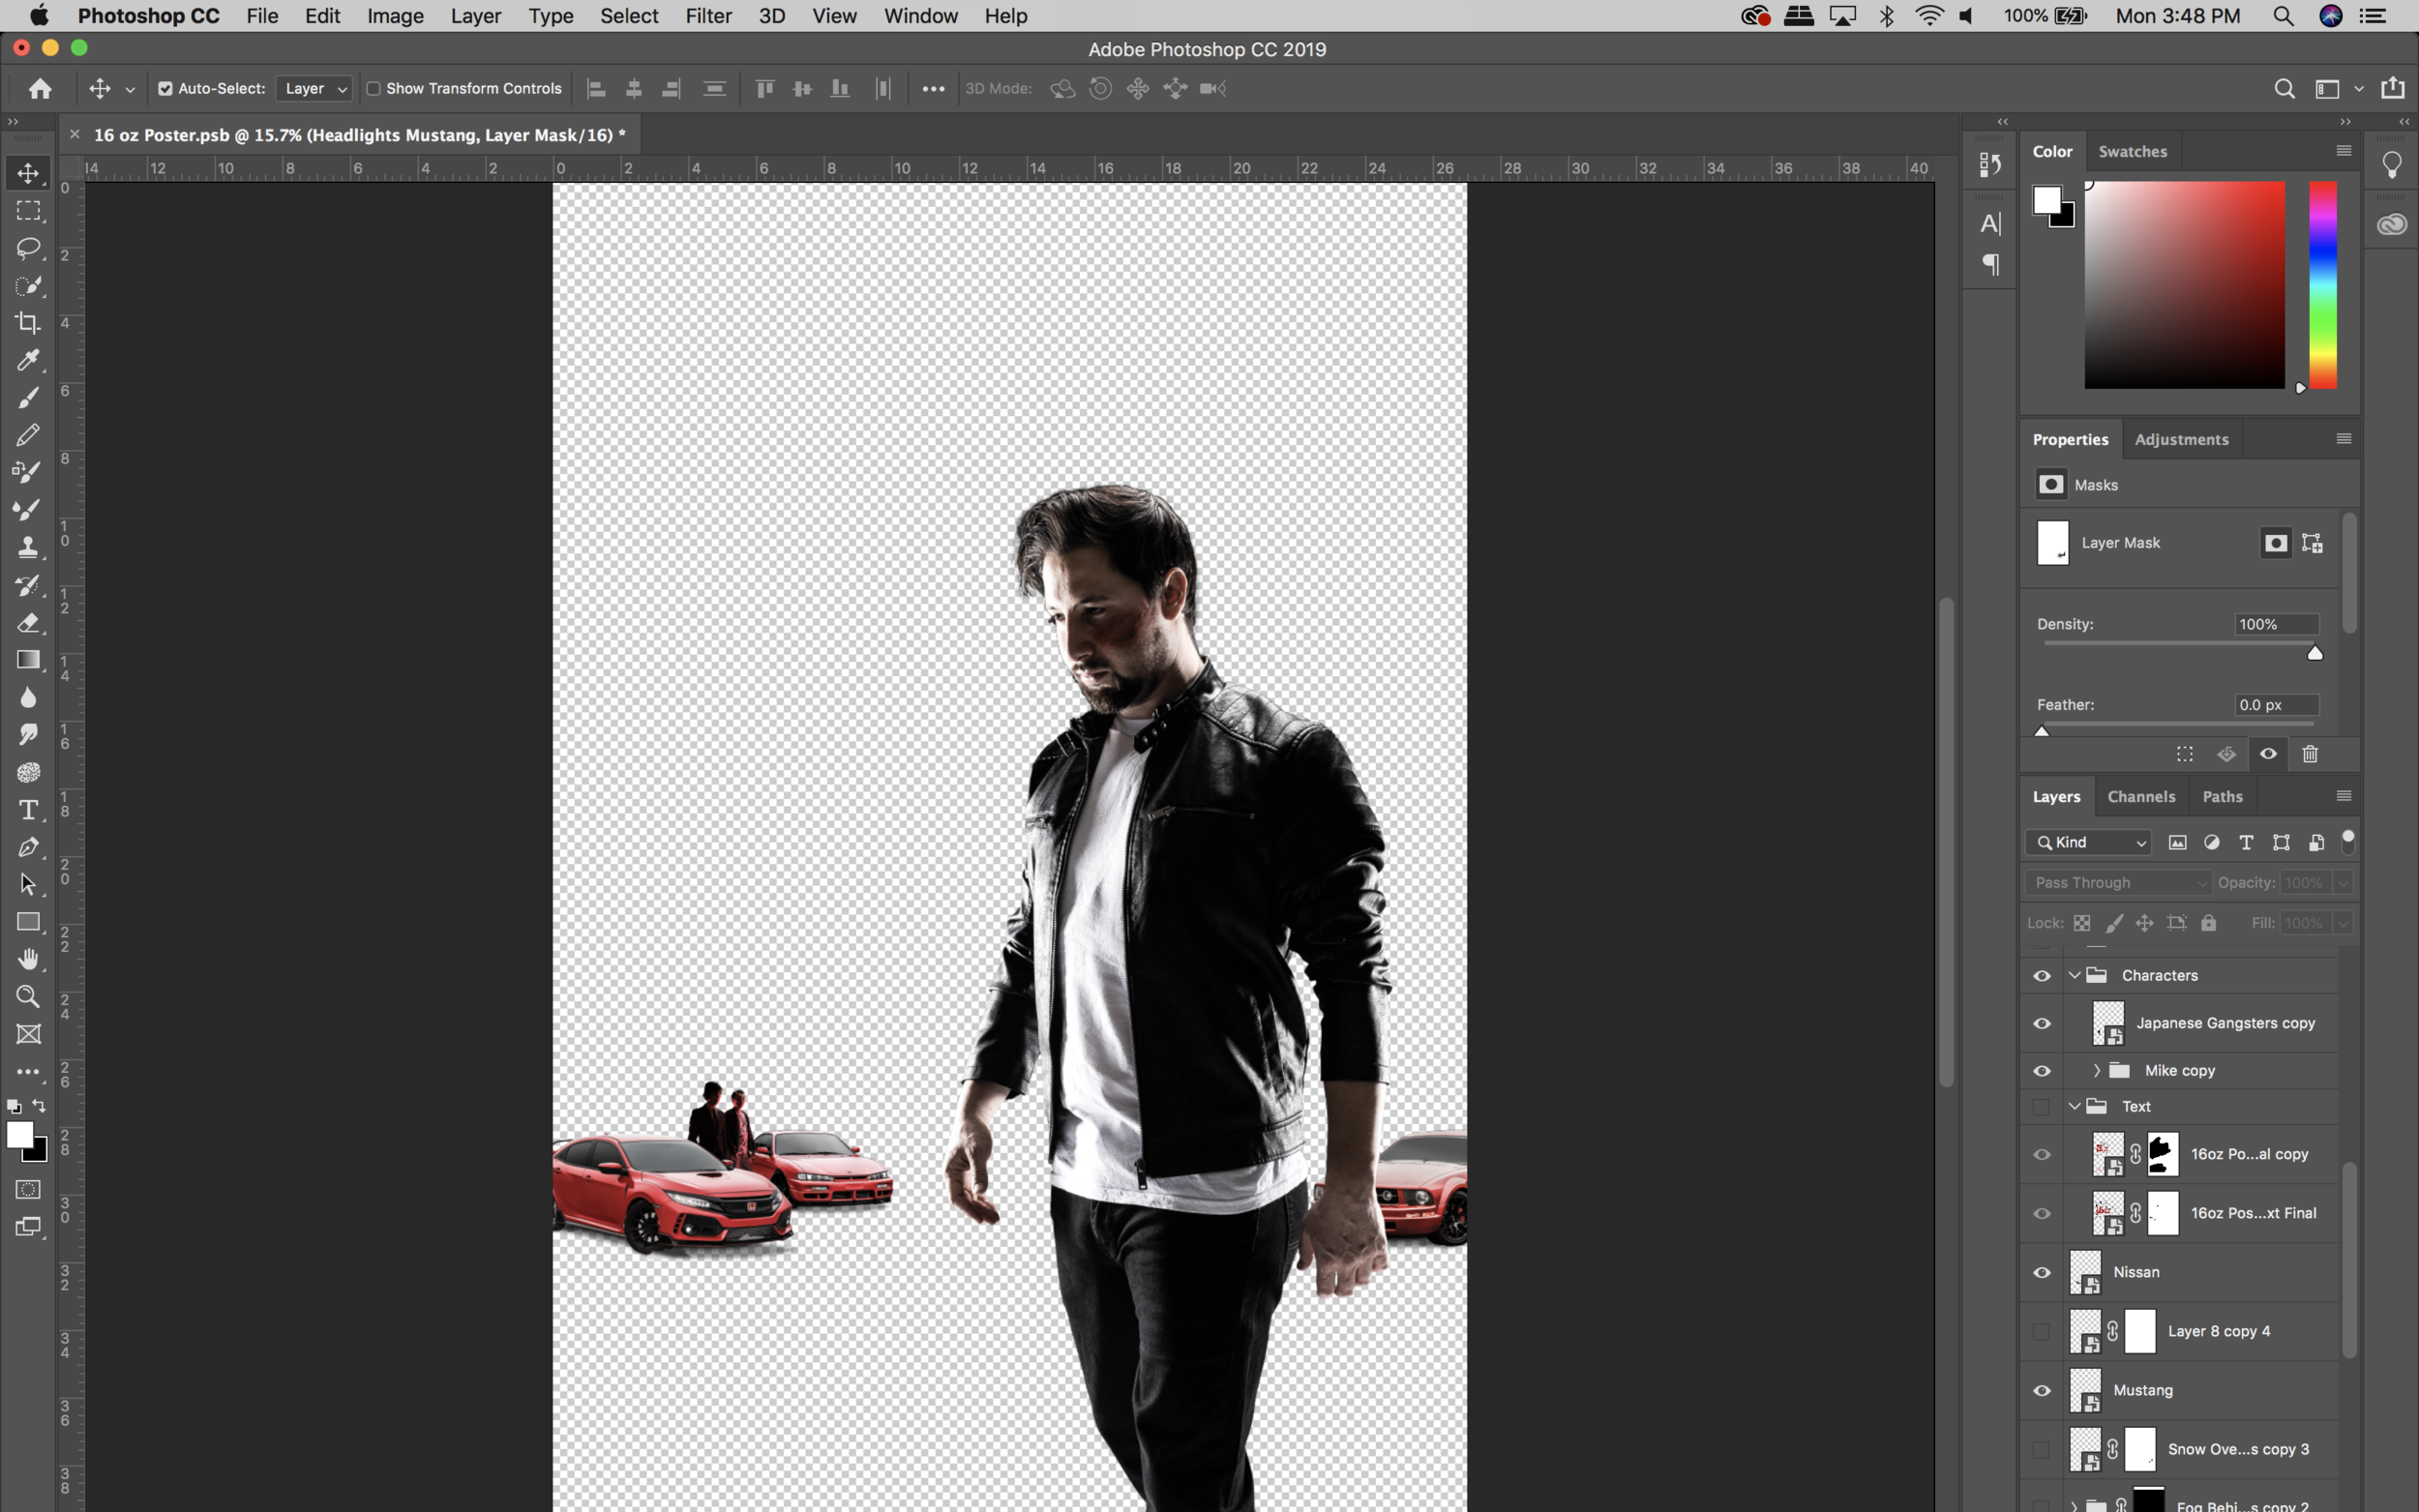 Poster Being Built Process Image.png